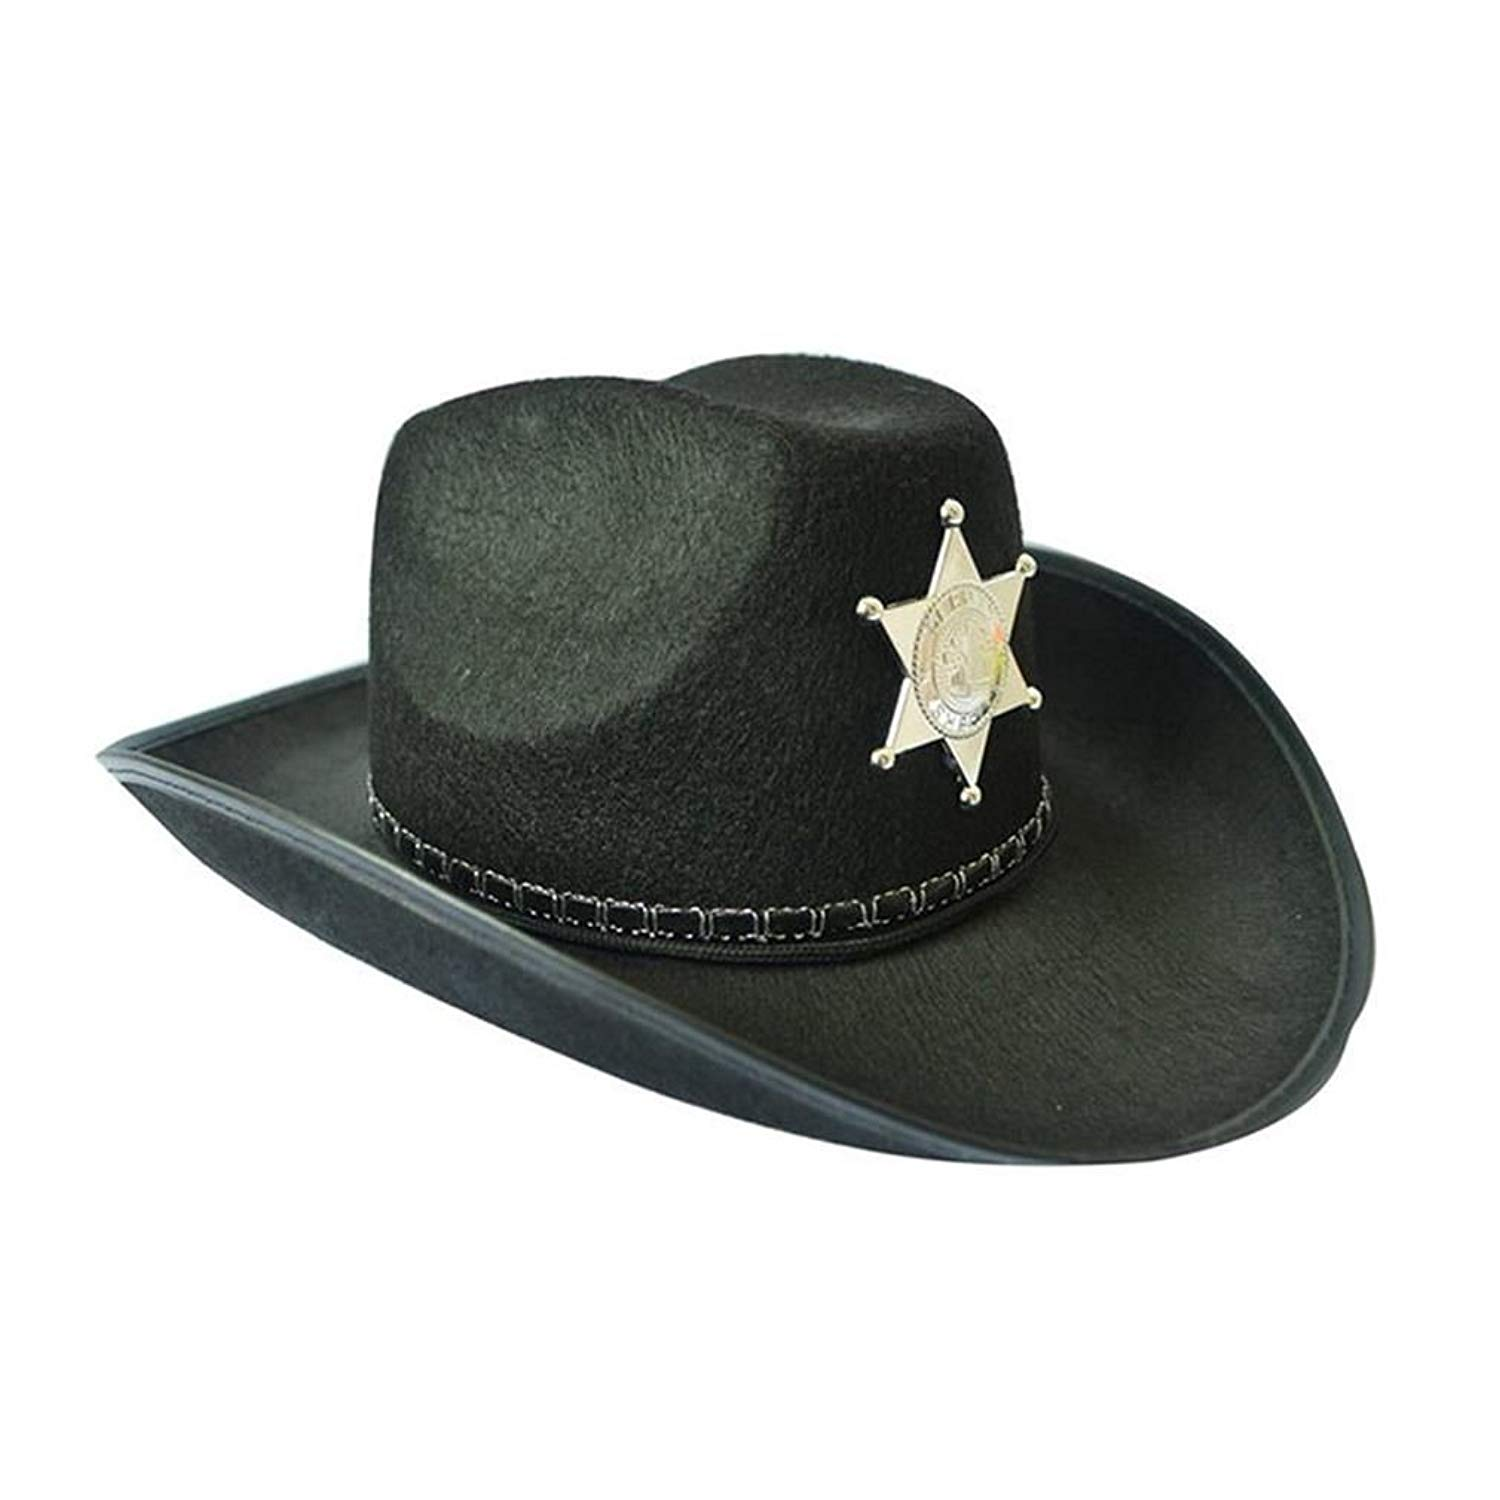 4617293cdc0a6 Get Quotations · luyaoyao Cowboy Hat Western Sheriff Hat Fancy Dress Cowboy  Themed